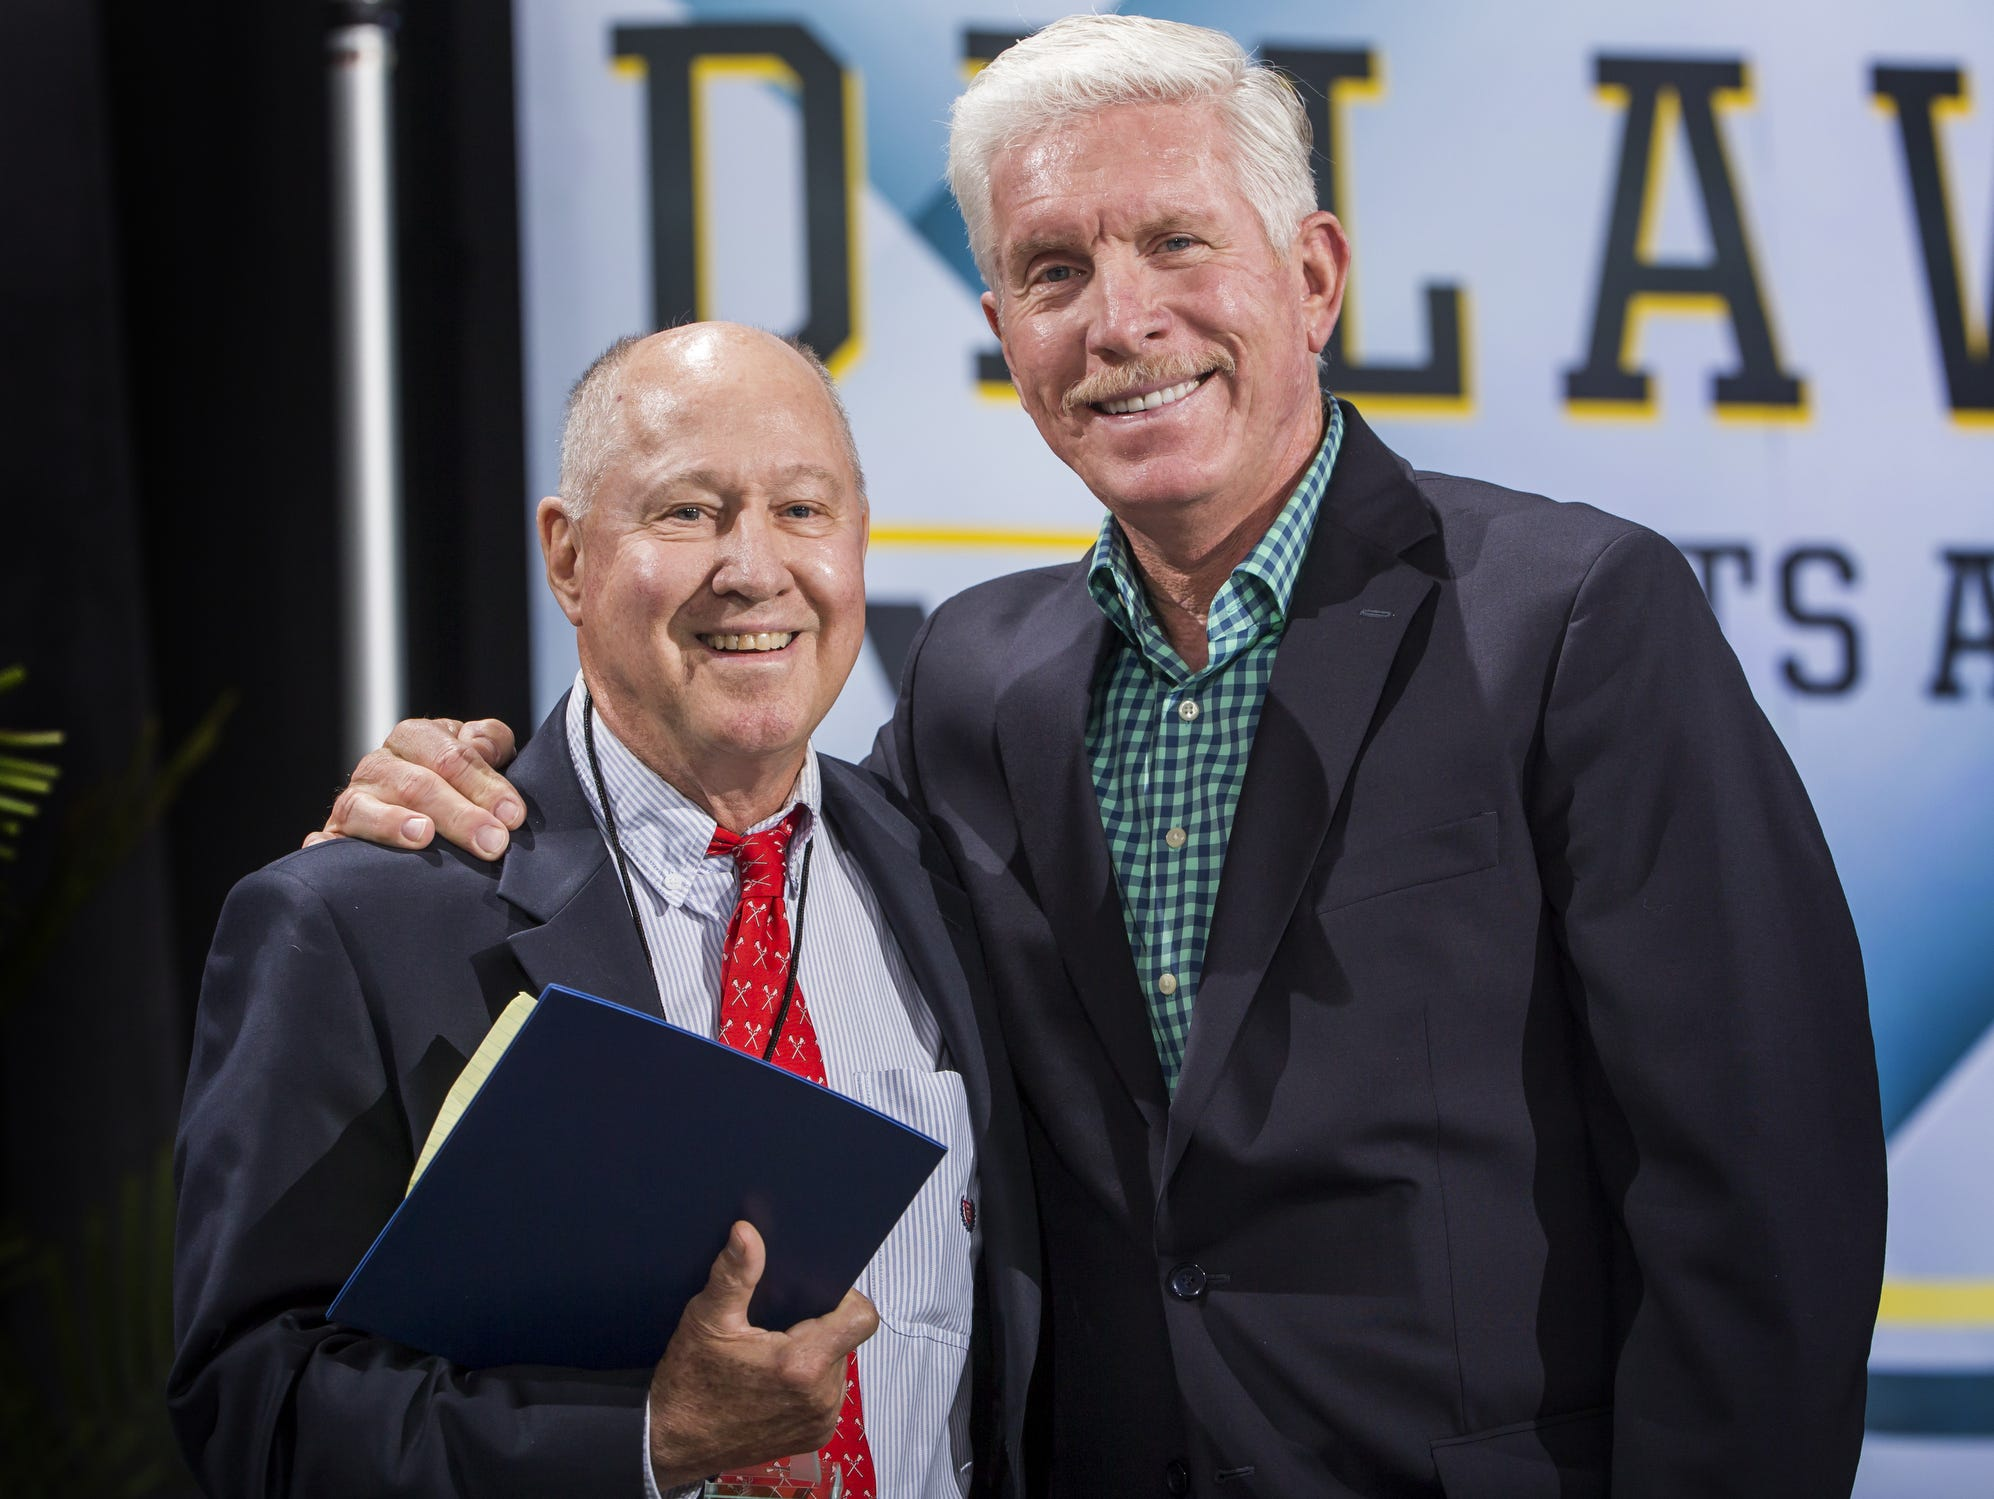 Cape Henlopen Girls Lacrosse Coach PJ Kesmodel poses with Mike Schmidt after being named the coach of the year at the Delaware Sports Awards banquet at the Bob Carpenter Center at the University of Delaware in Newark on Wednesday evening.